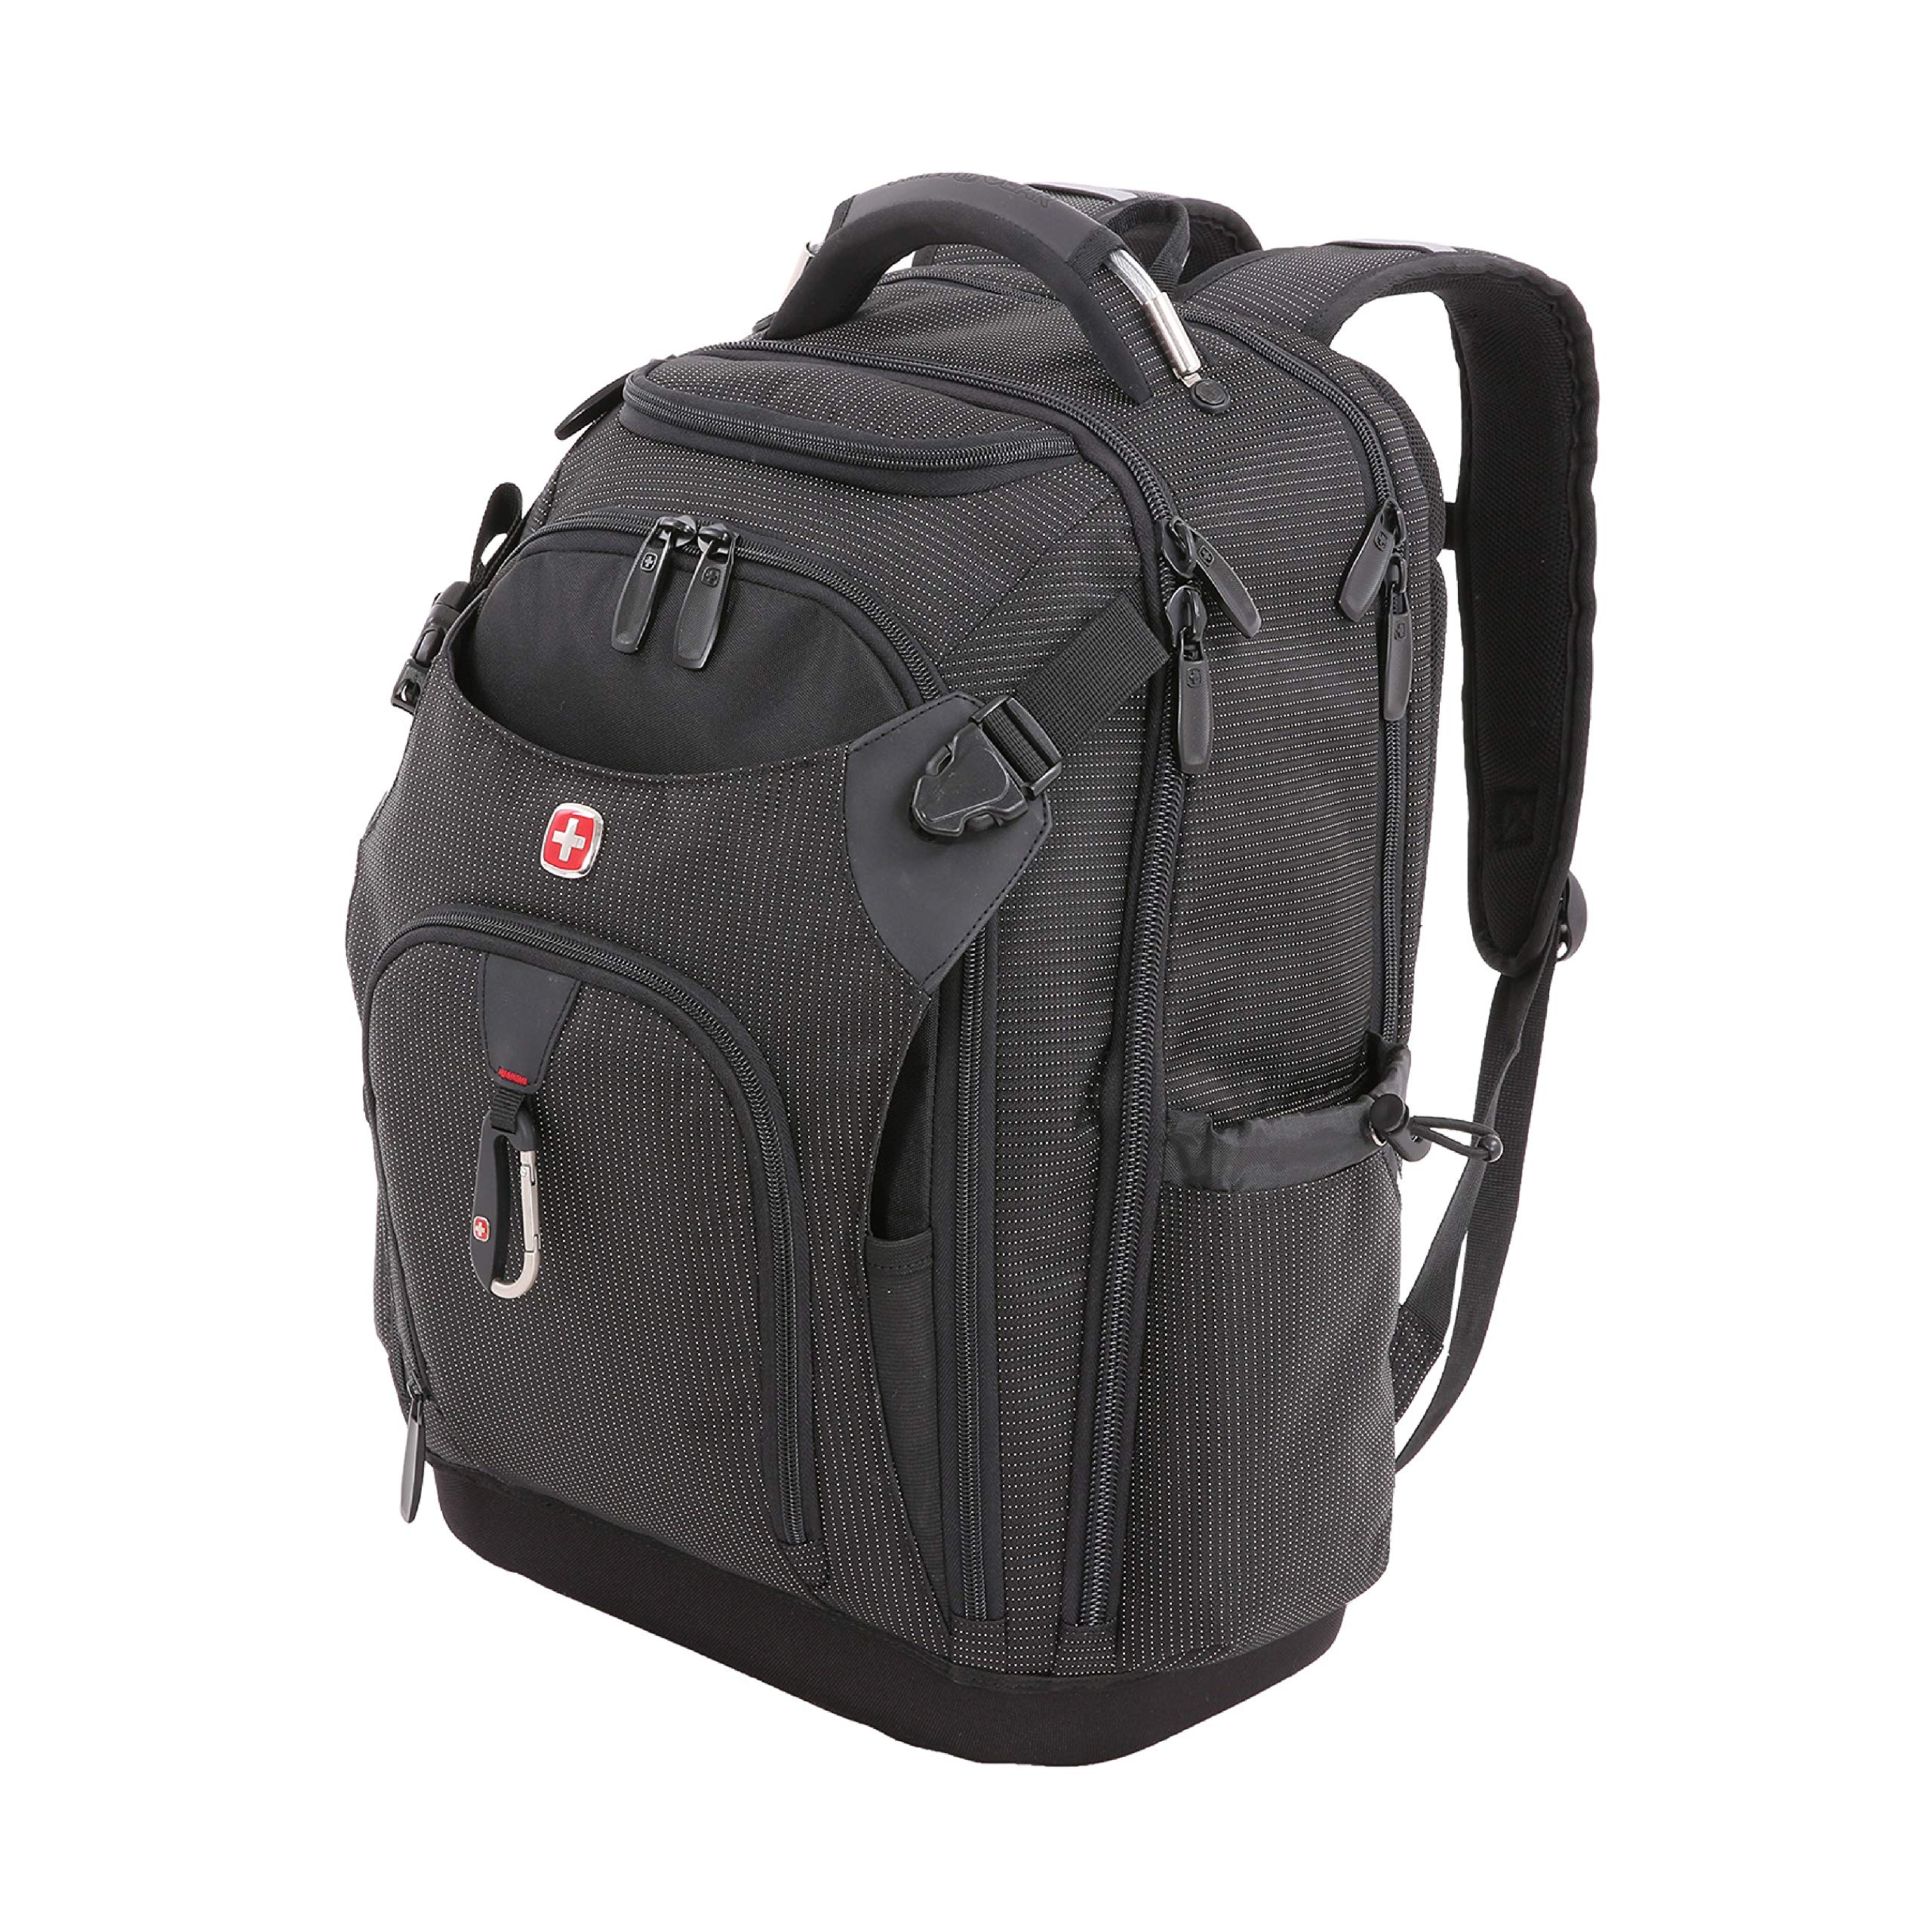 SWISSGEAR Work Pack Pro Ultimate Tool Protection Organization Durable Laptop Backpack with built-in USB port by SwissGear